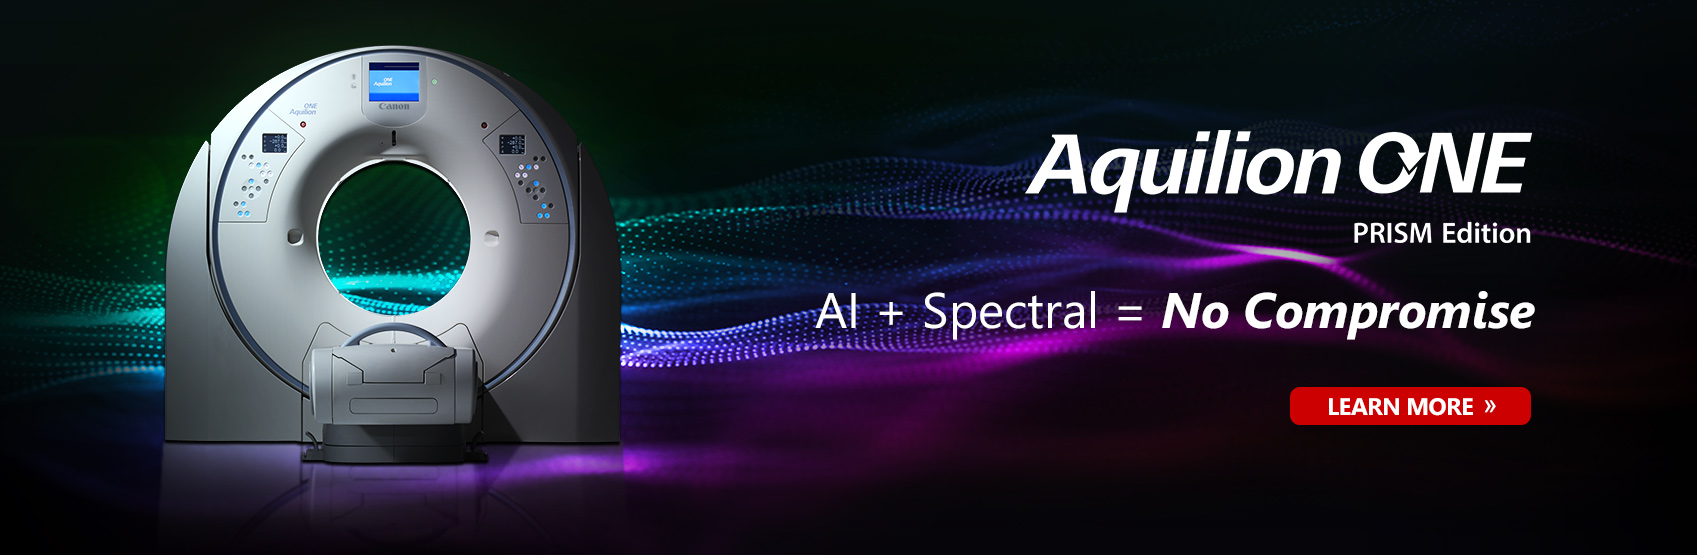 Aquilion ONE / PRISM Edition | AI + Spectral = No Compromise | Learn More